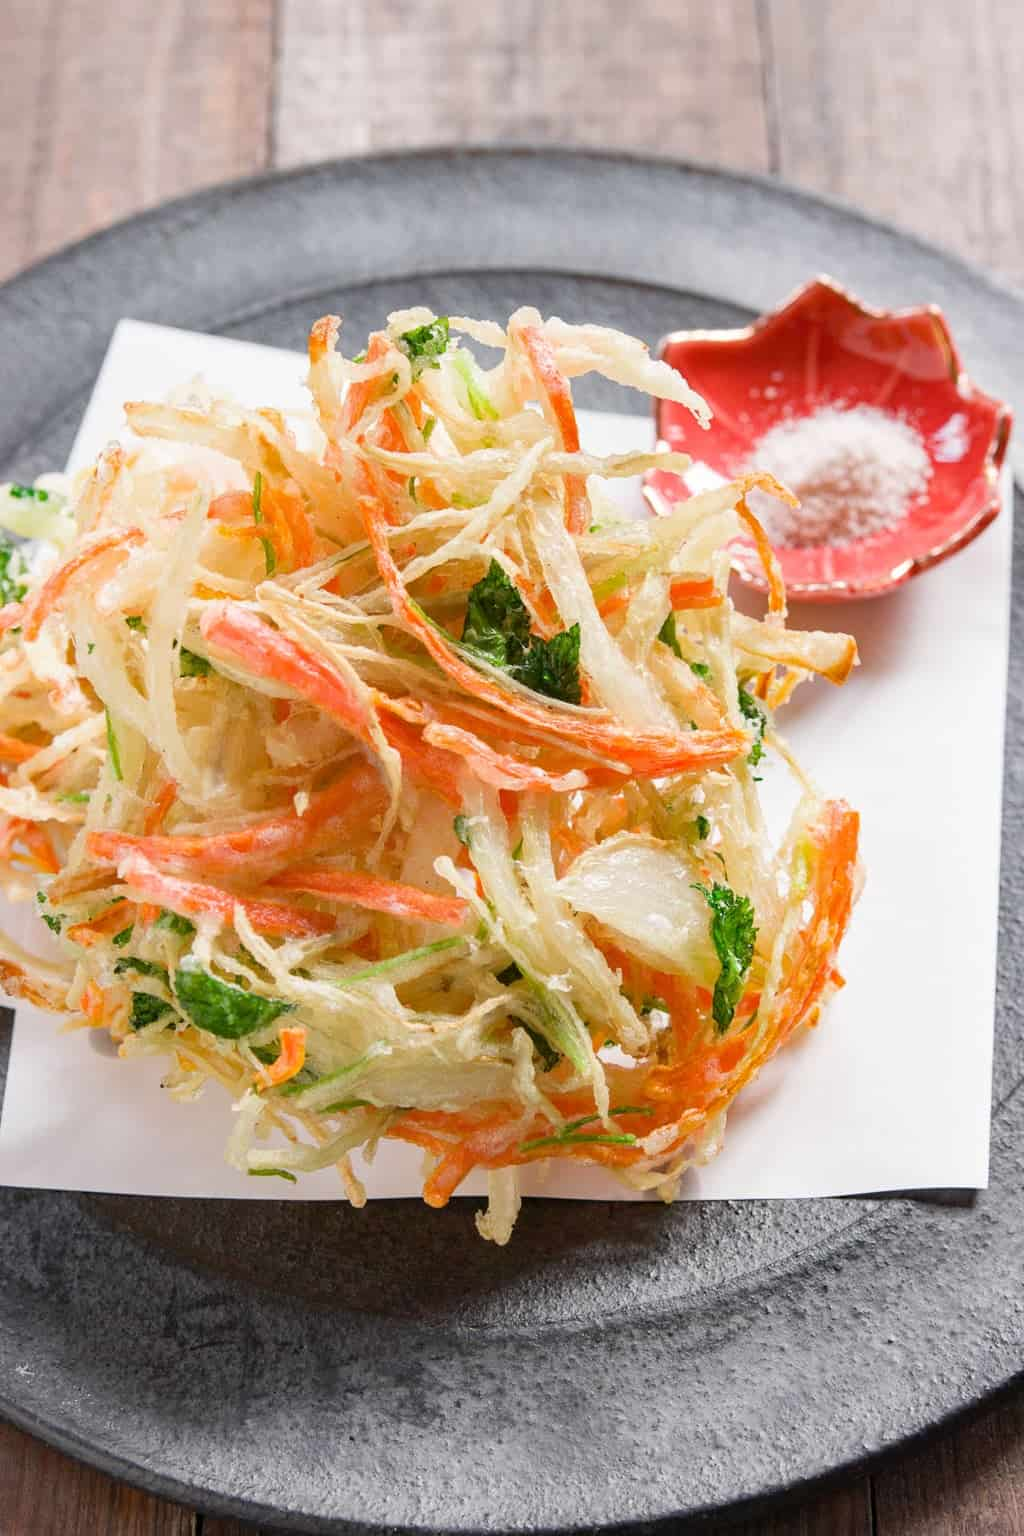 Crispy and delicious, Kakiage are Japanese fritters made with vegetables such as onions and carrots held together with a small amount of tempura batter.